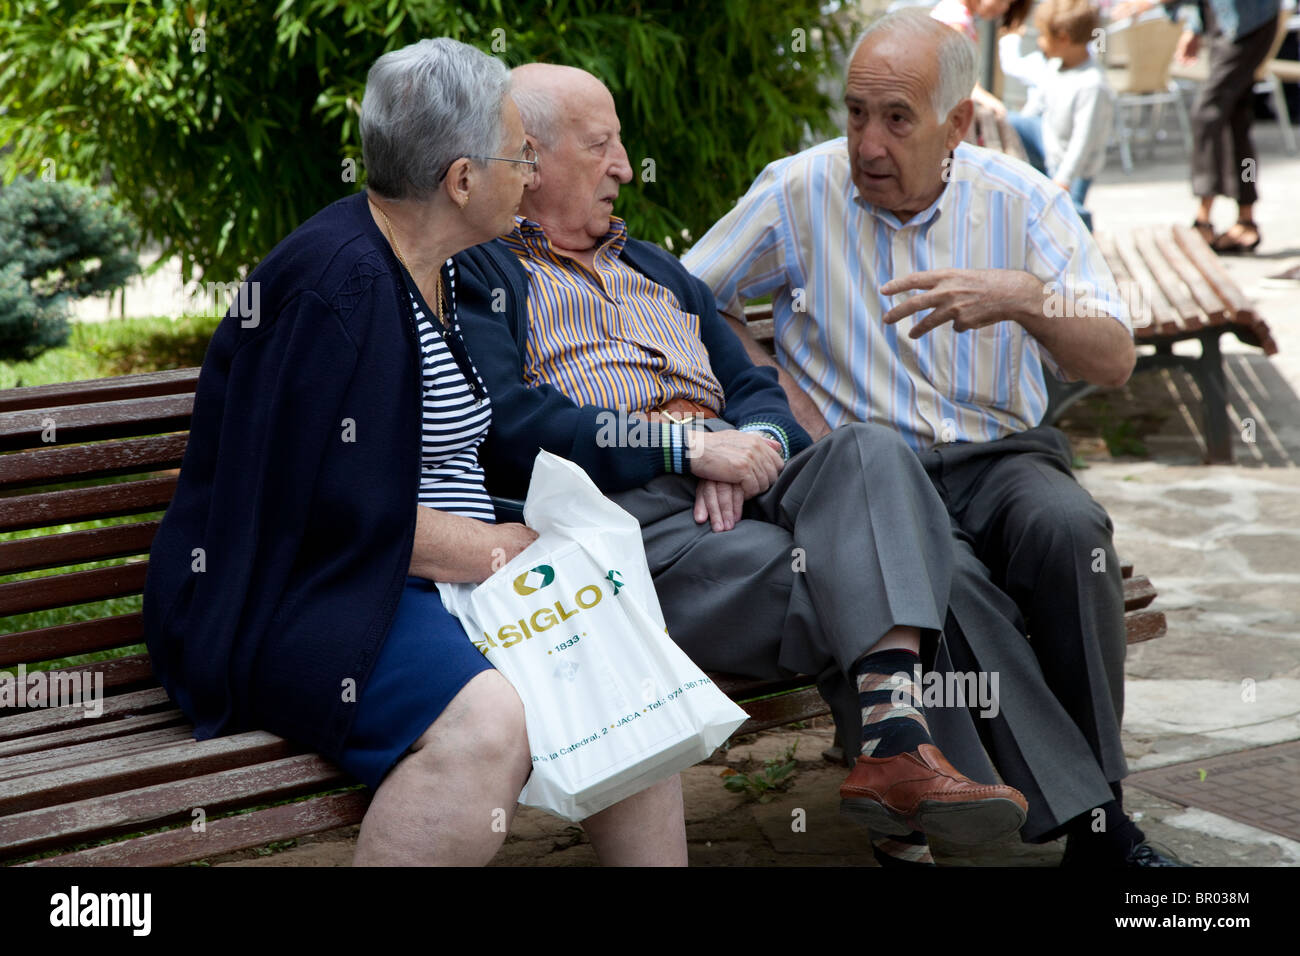 Old People On A Bench Older People Chatting On Park Bench